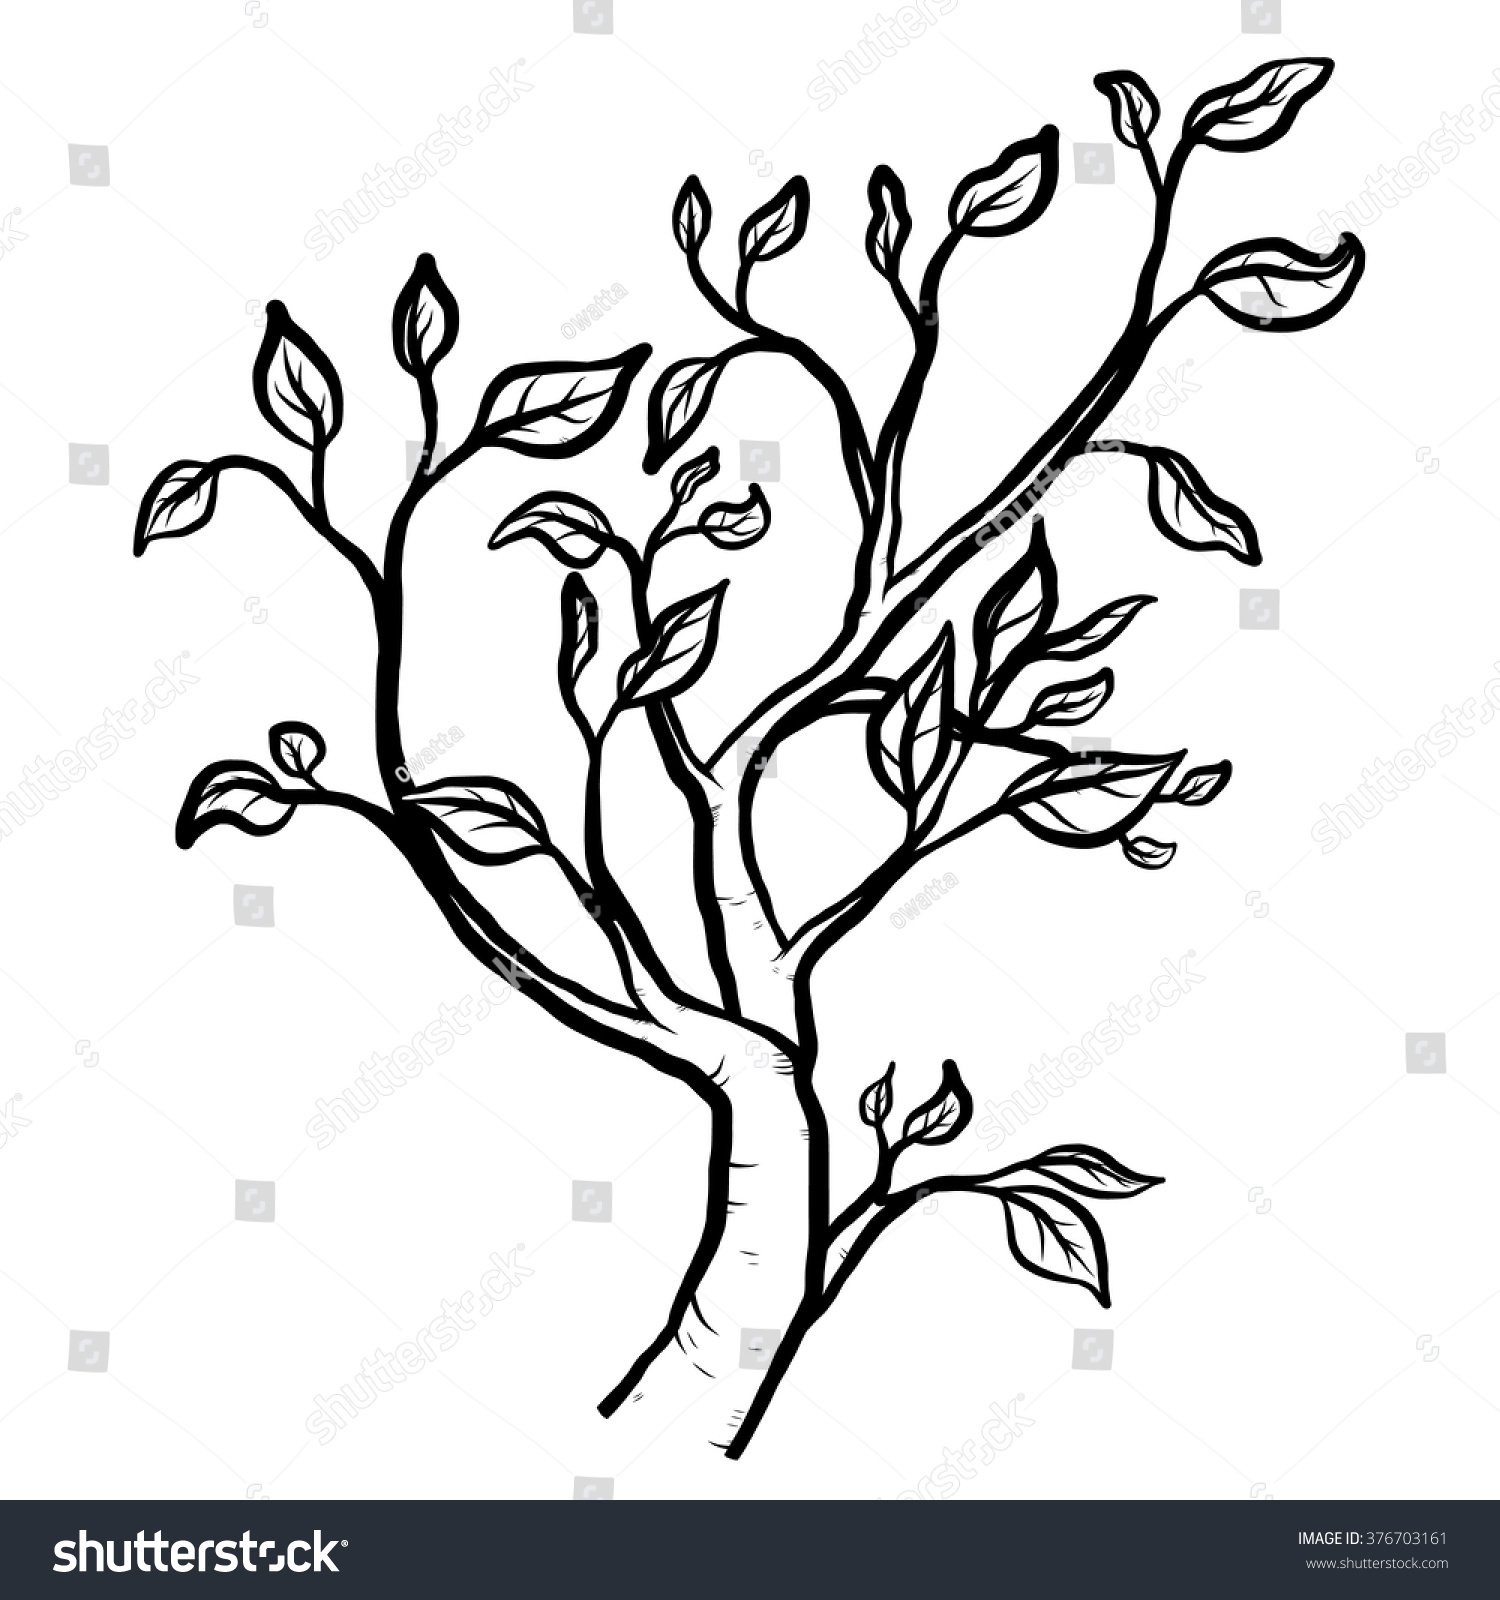 how to draw a branchy tree